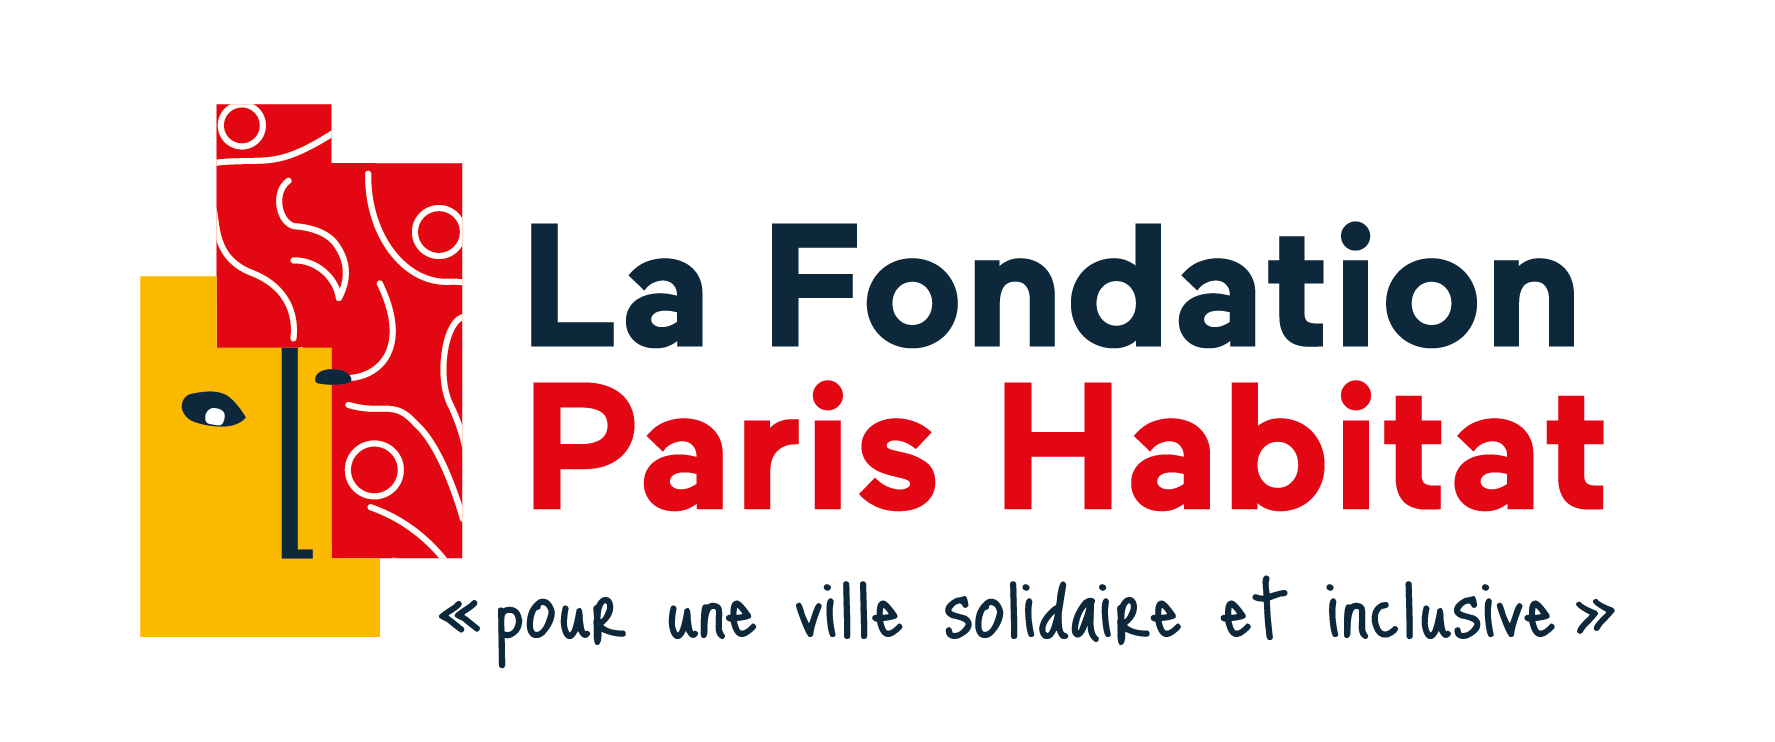 Fondation Paris Habitat